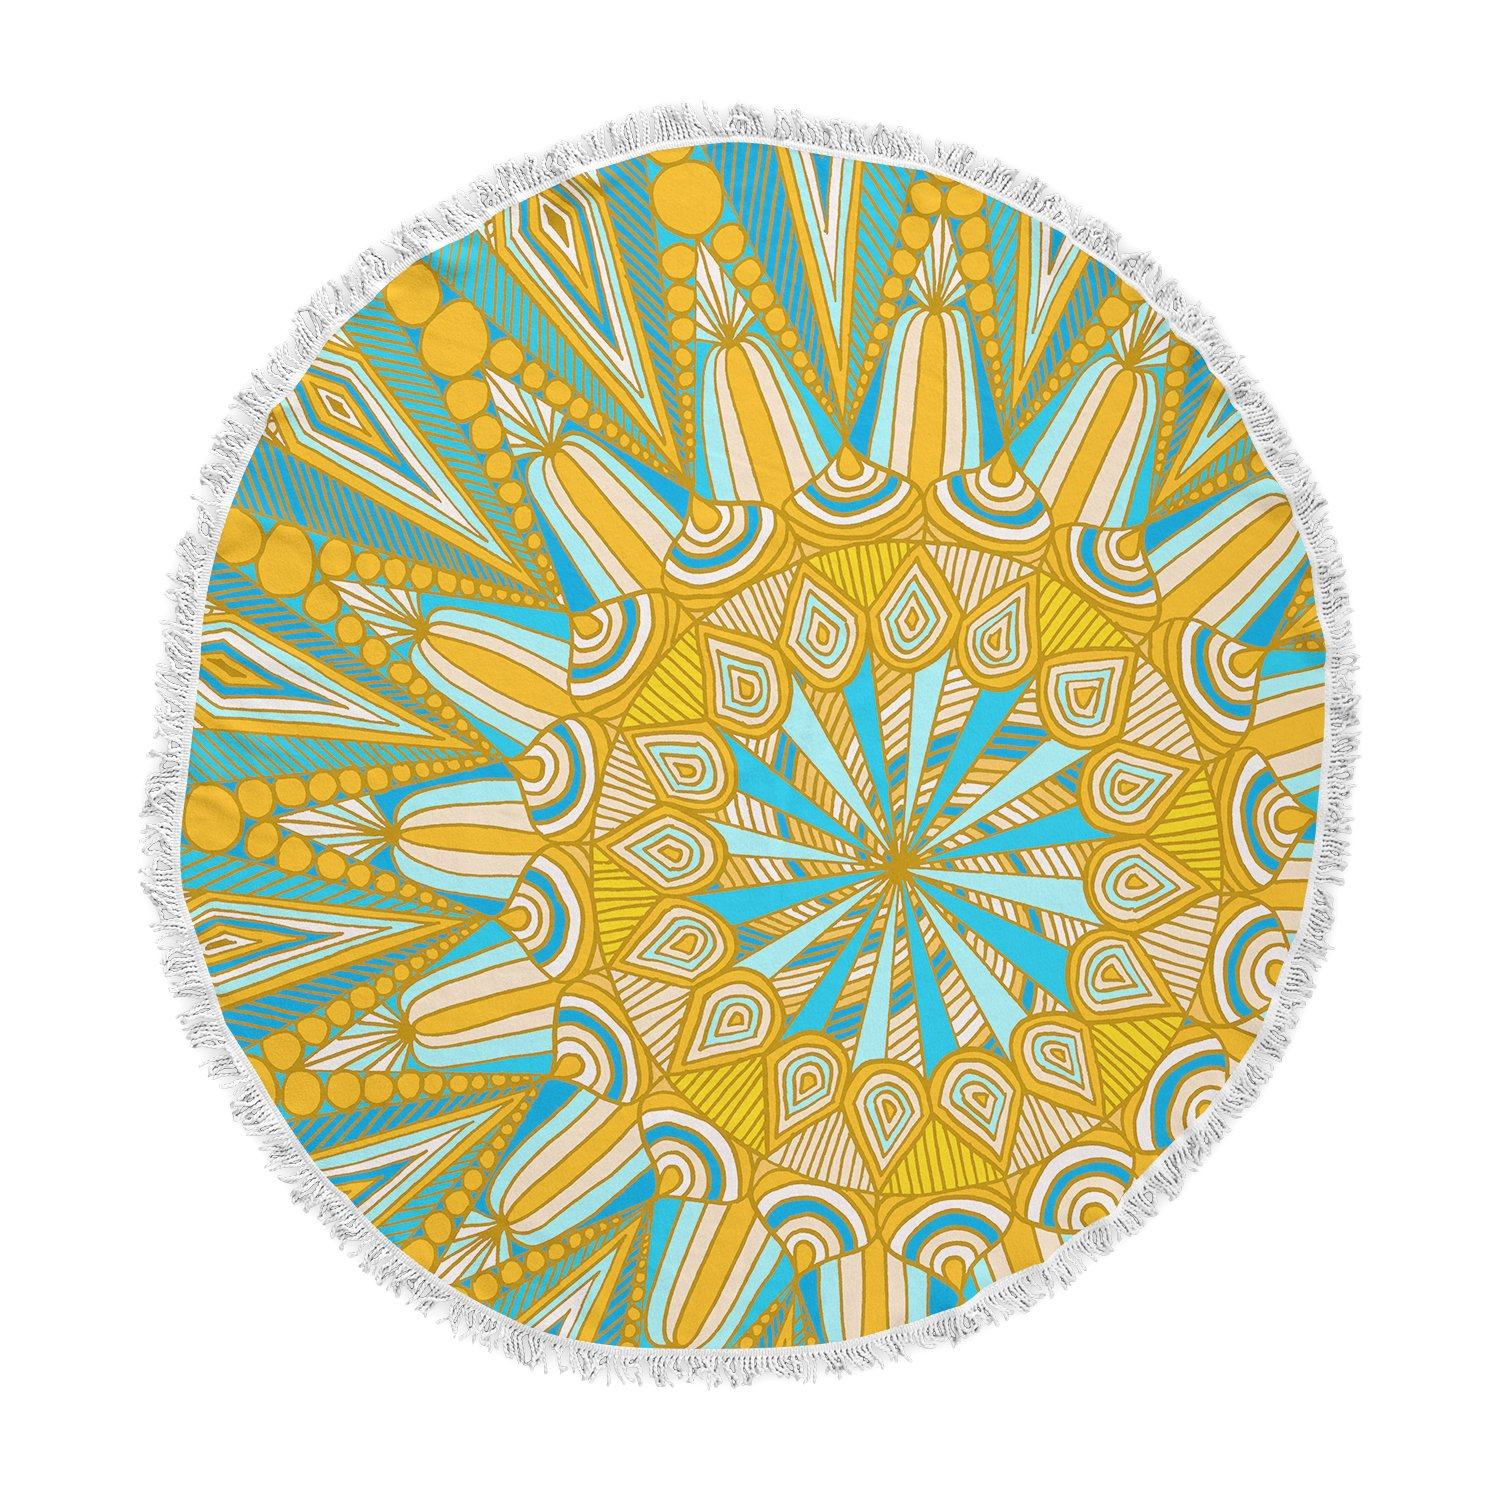 KESS InHouse Art Love Passionhere Comes the Sun Blue Yellow Round Beach Towel Blanket